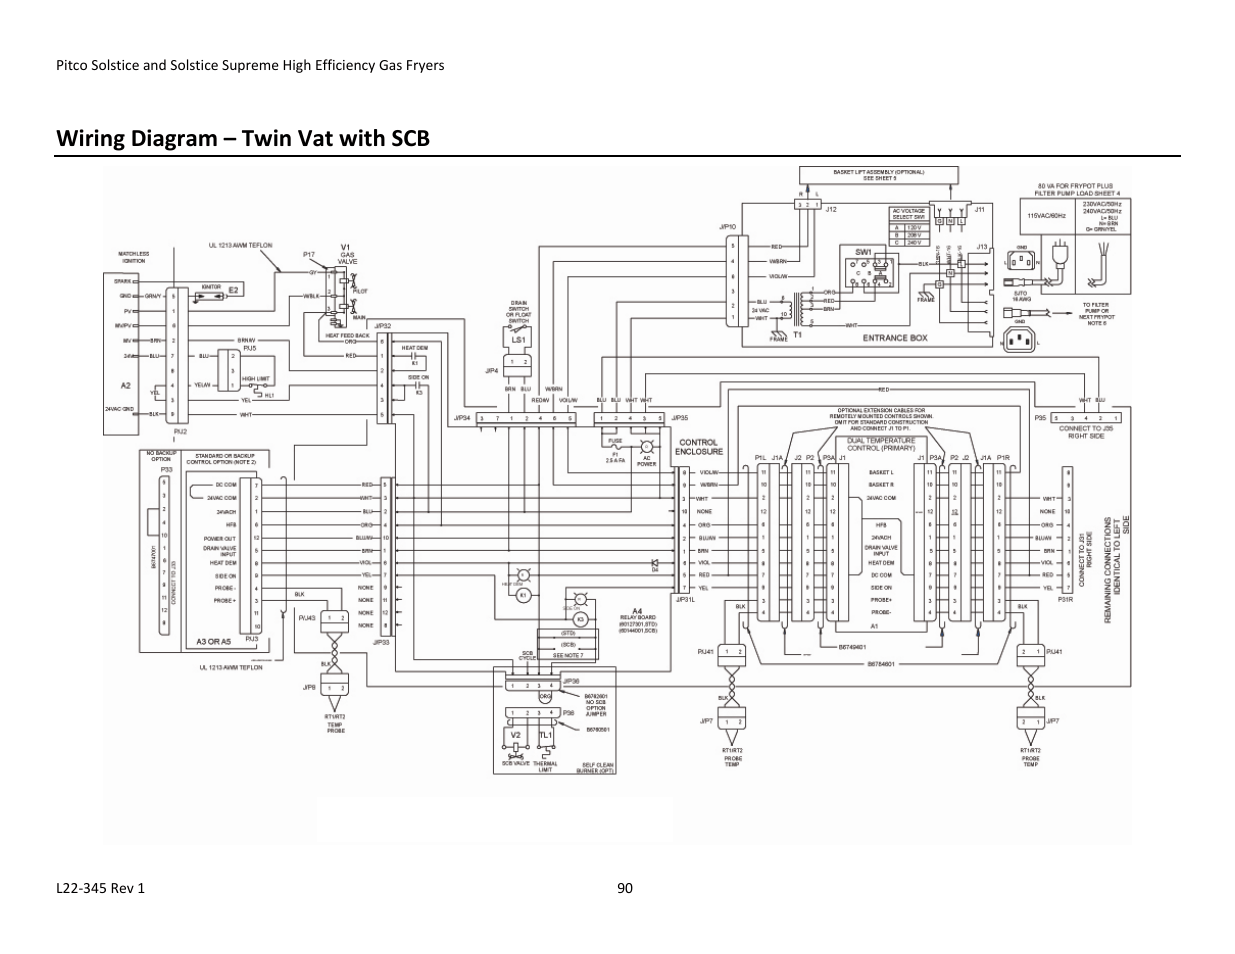 Wiring Diagram Twin Vat With Scb